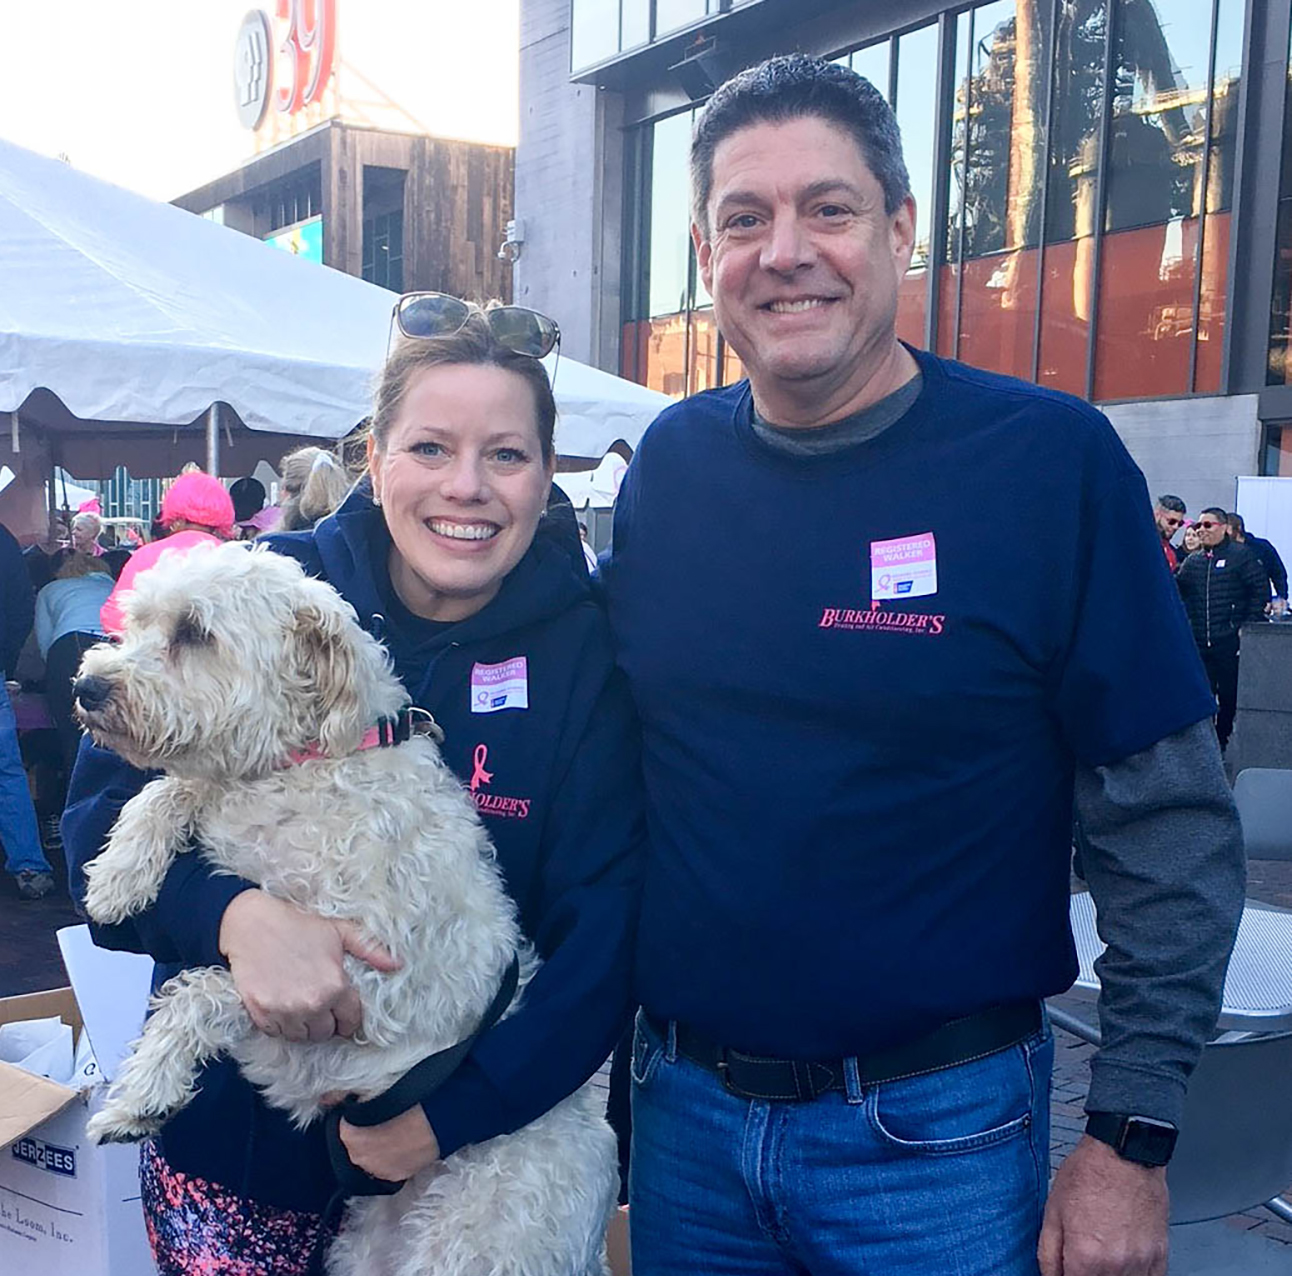 Bob and Marissa Burkholder with their dog Selby at the 2017 Making Strides Against Breast Cancer Walk